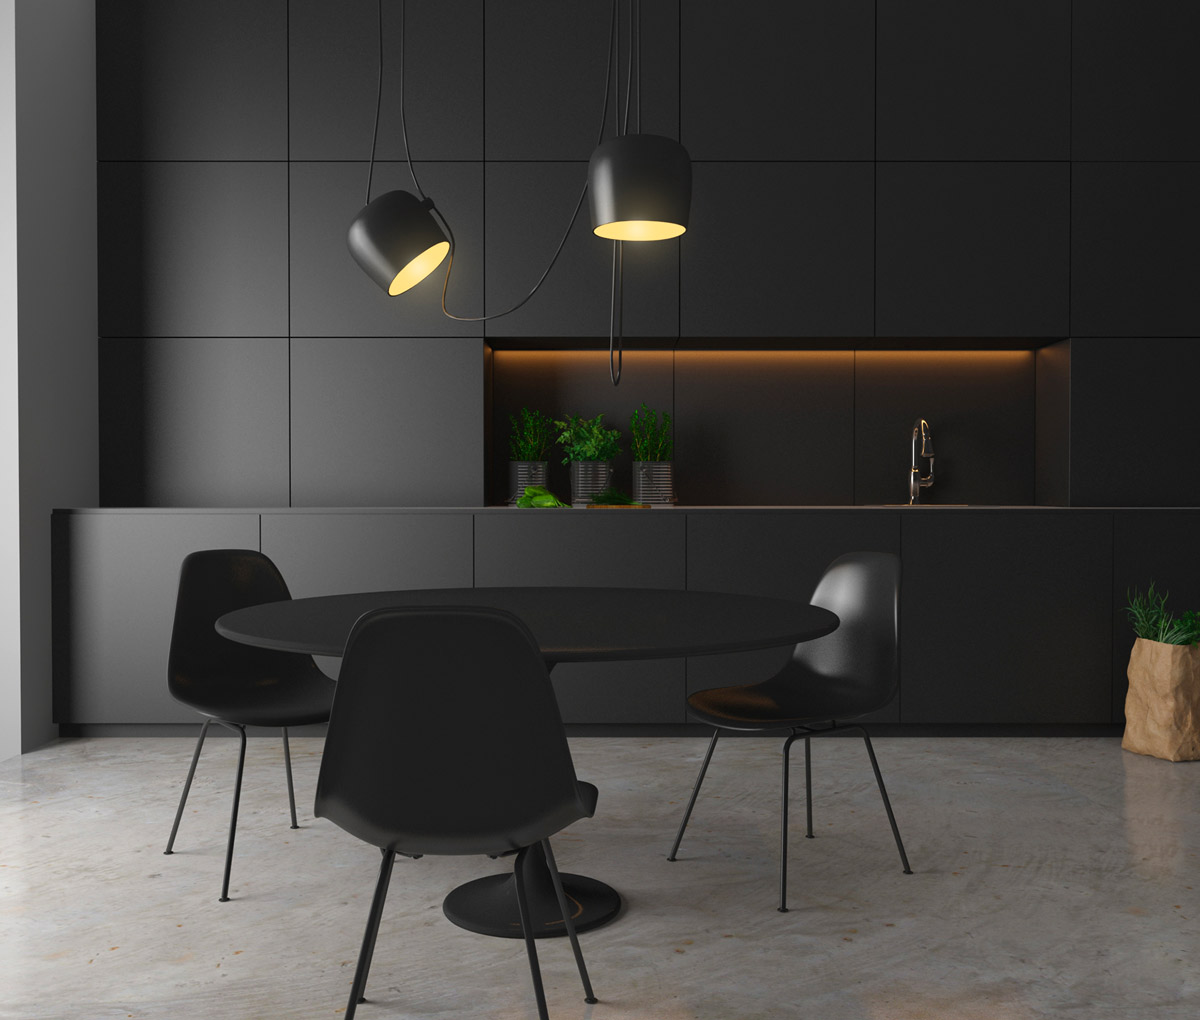 Gut Minimalist Black Kitchen